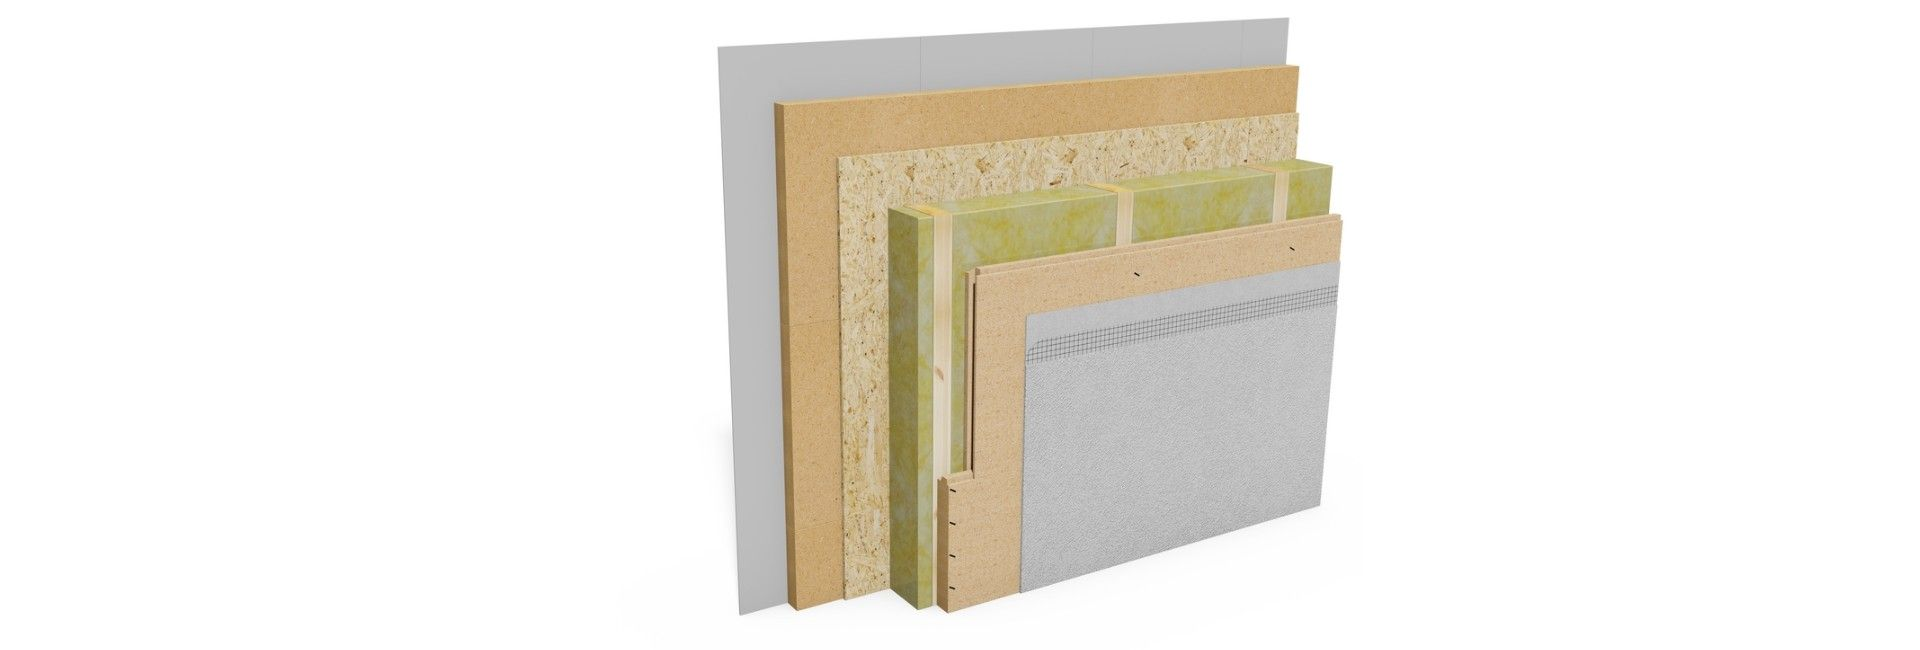 Sound insulation construction external wall 50 dB